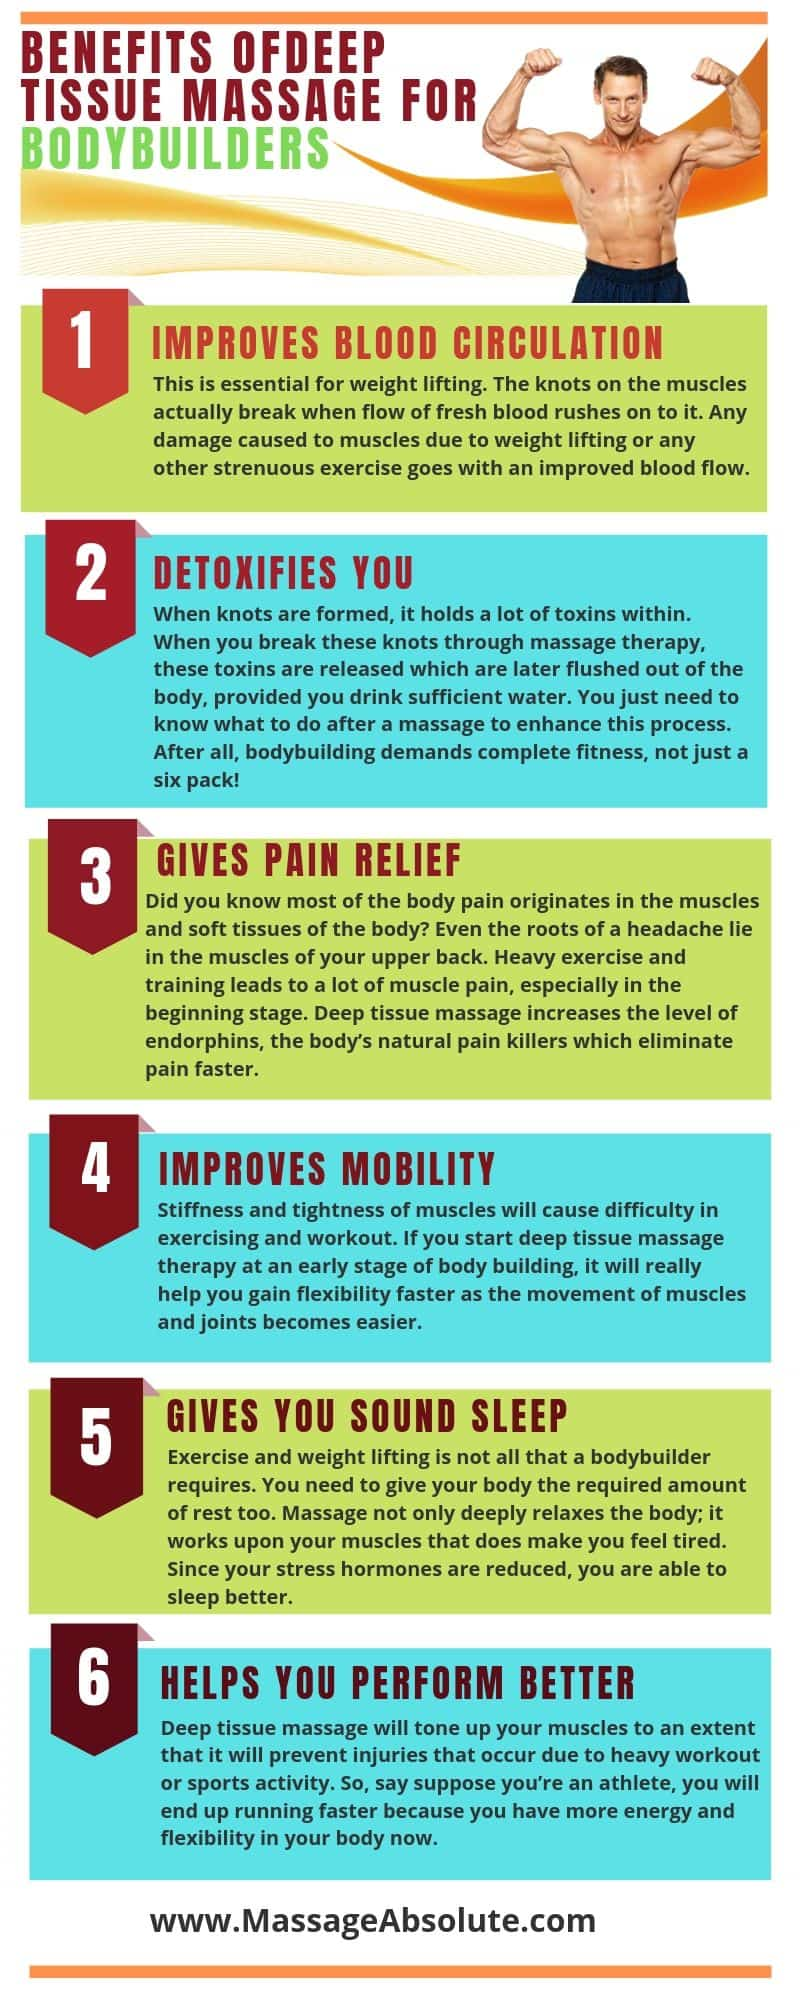 deep massage for muscle growth